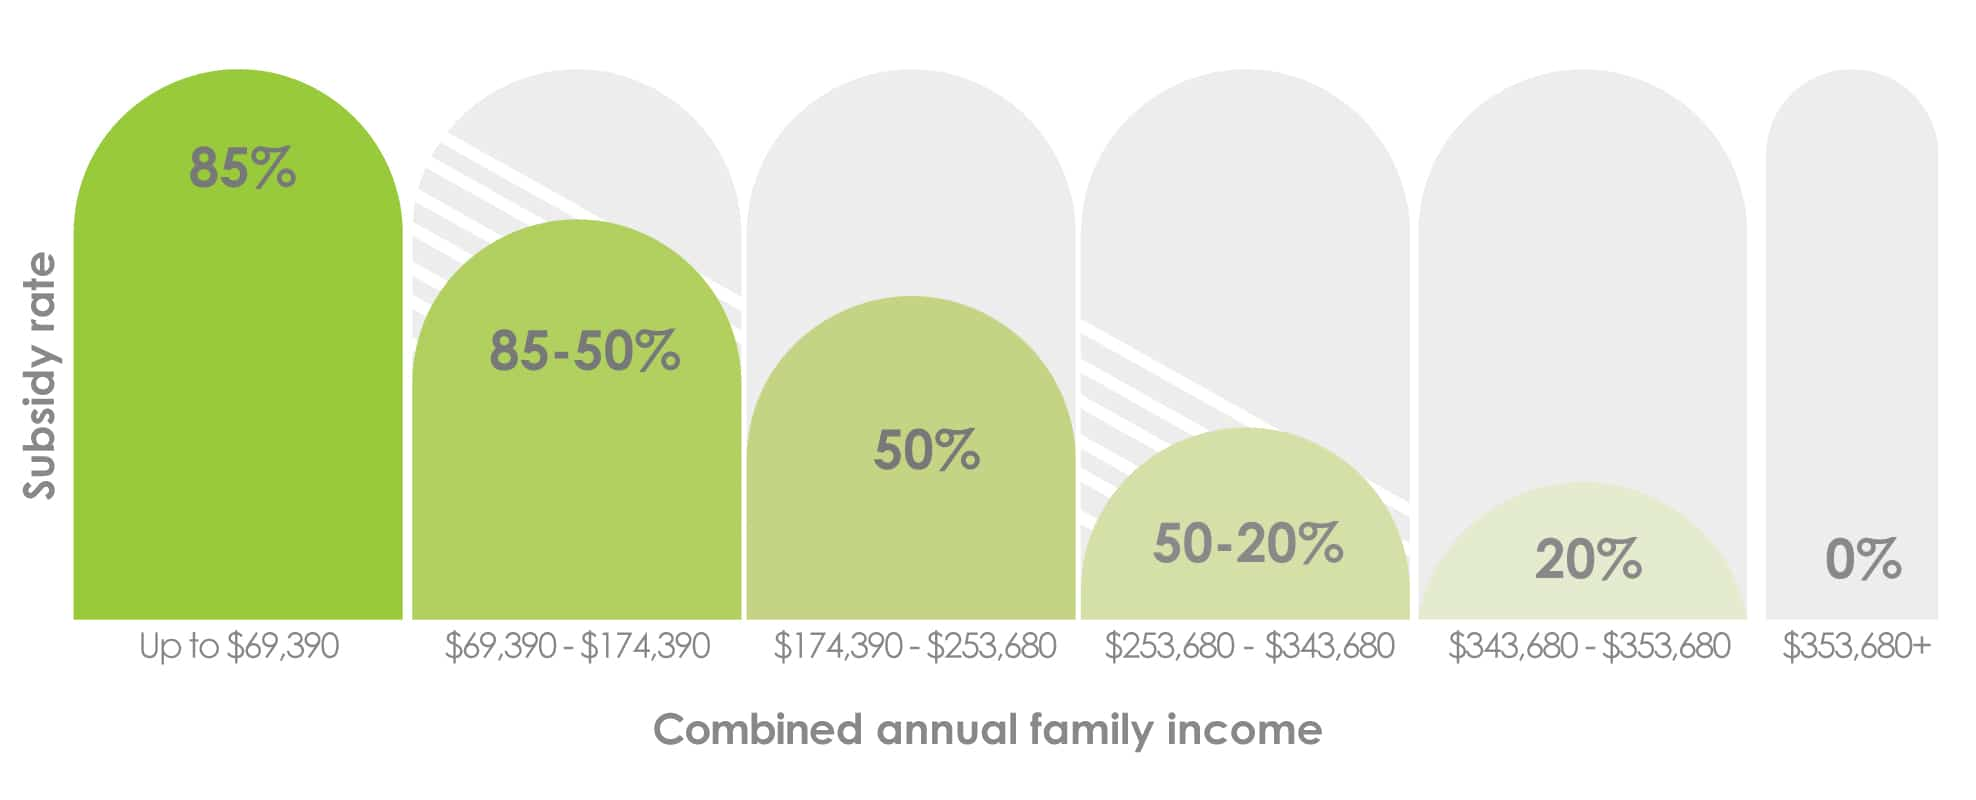 Child Care Subsidy Income Test Graph 2020/21